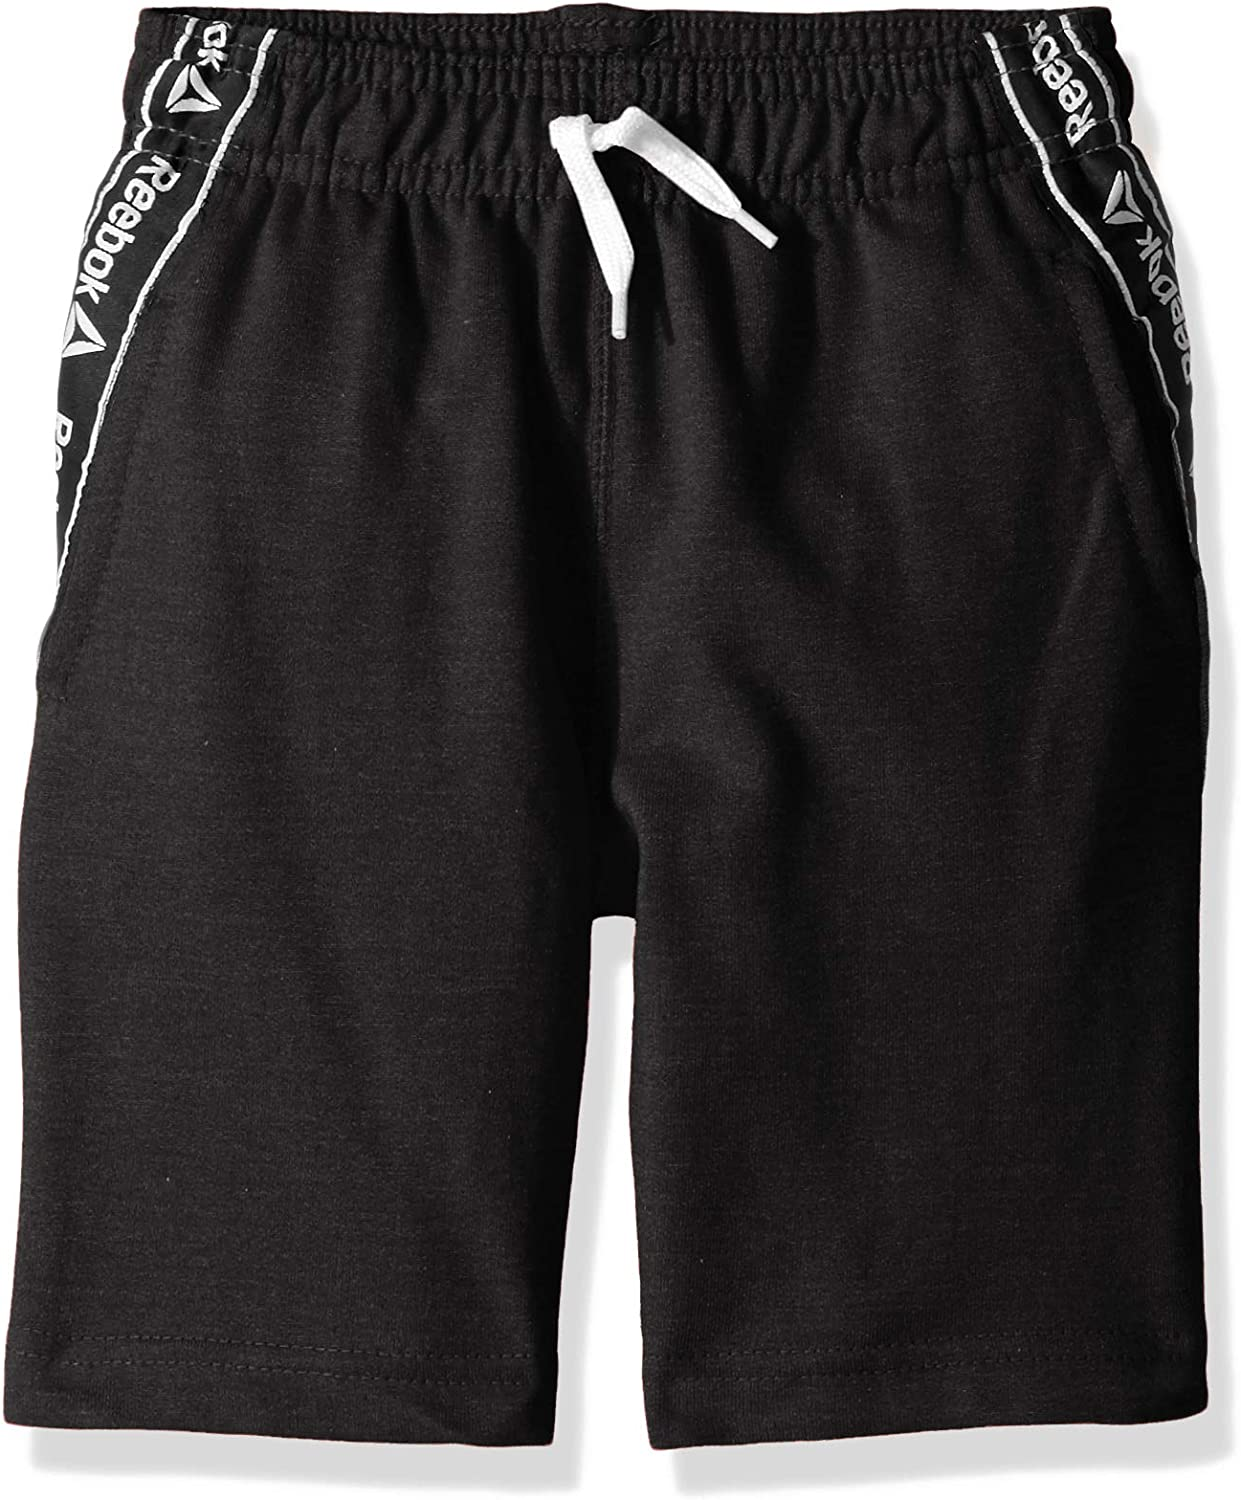 Reebok Boys' French Terry Luxe Short